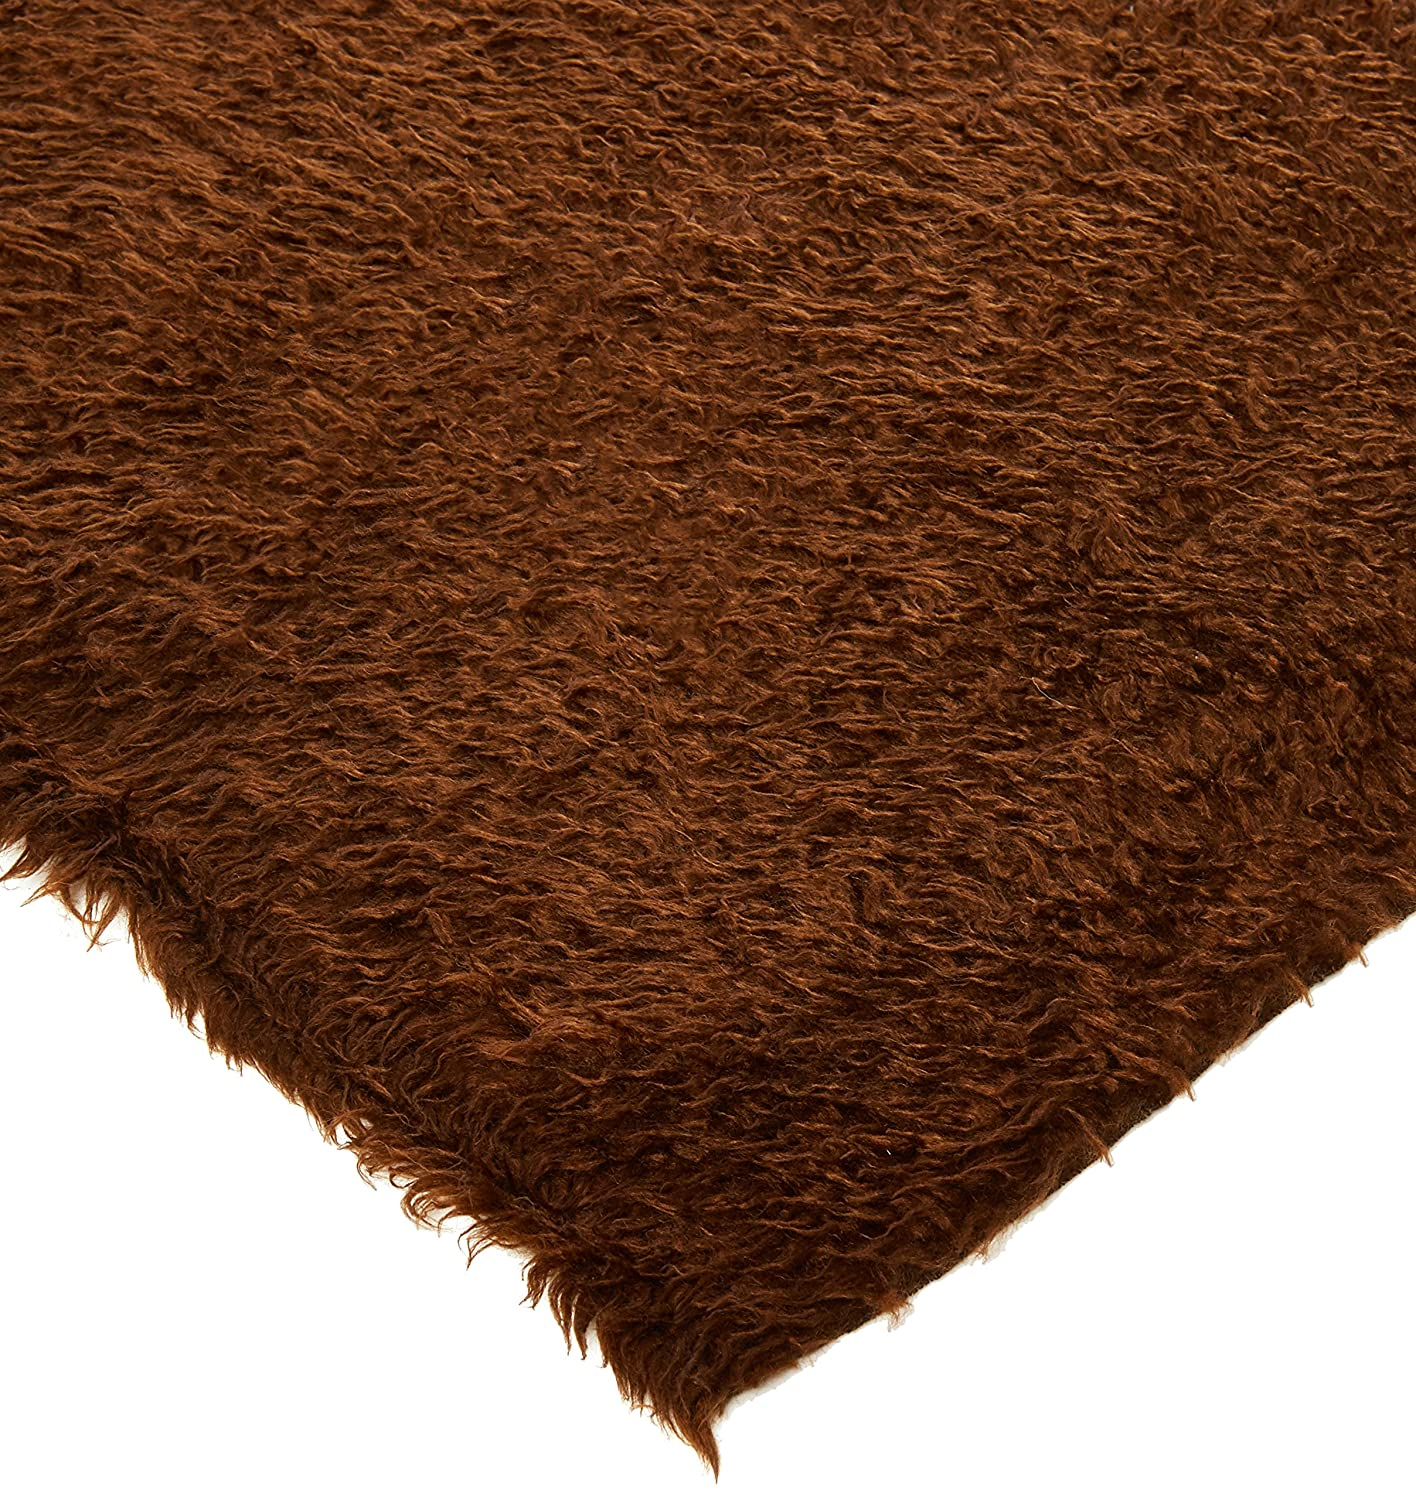 BRIGHT RED CURLY Teddy Faux Fur Fabric Material